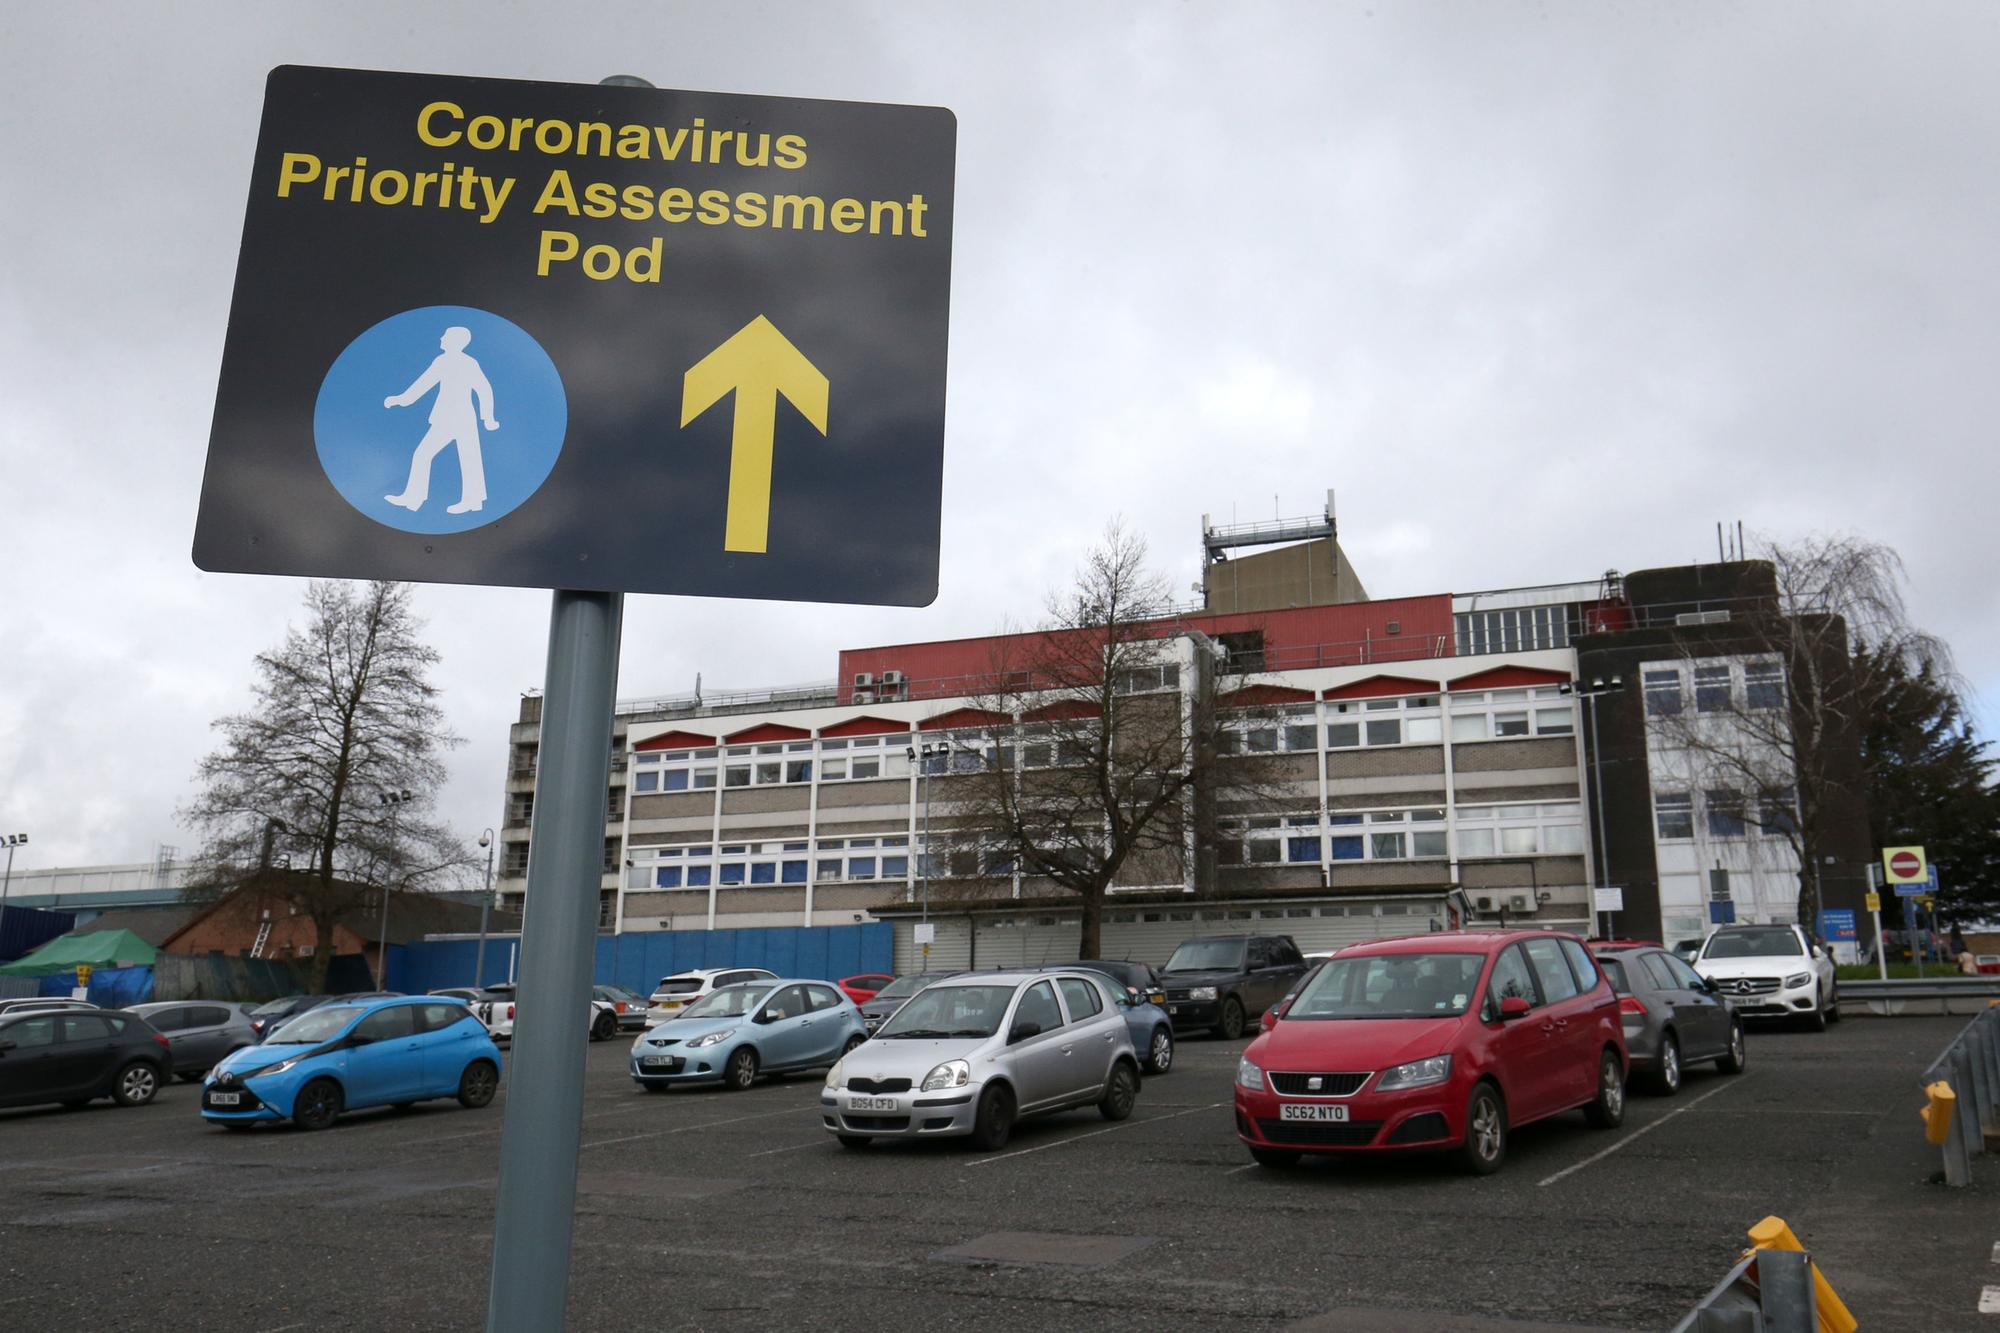 Coronavirus: Death toll in UK rises to 35 as 1,372 test positive ...